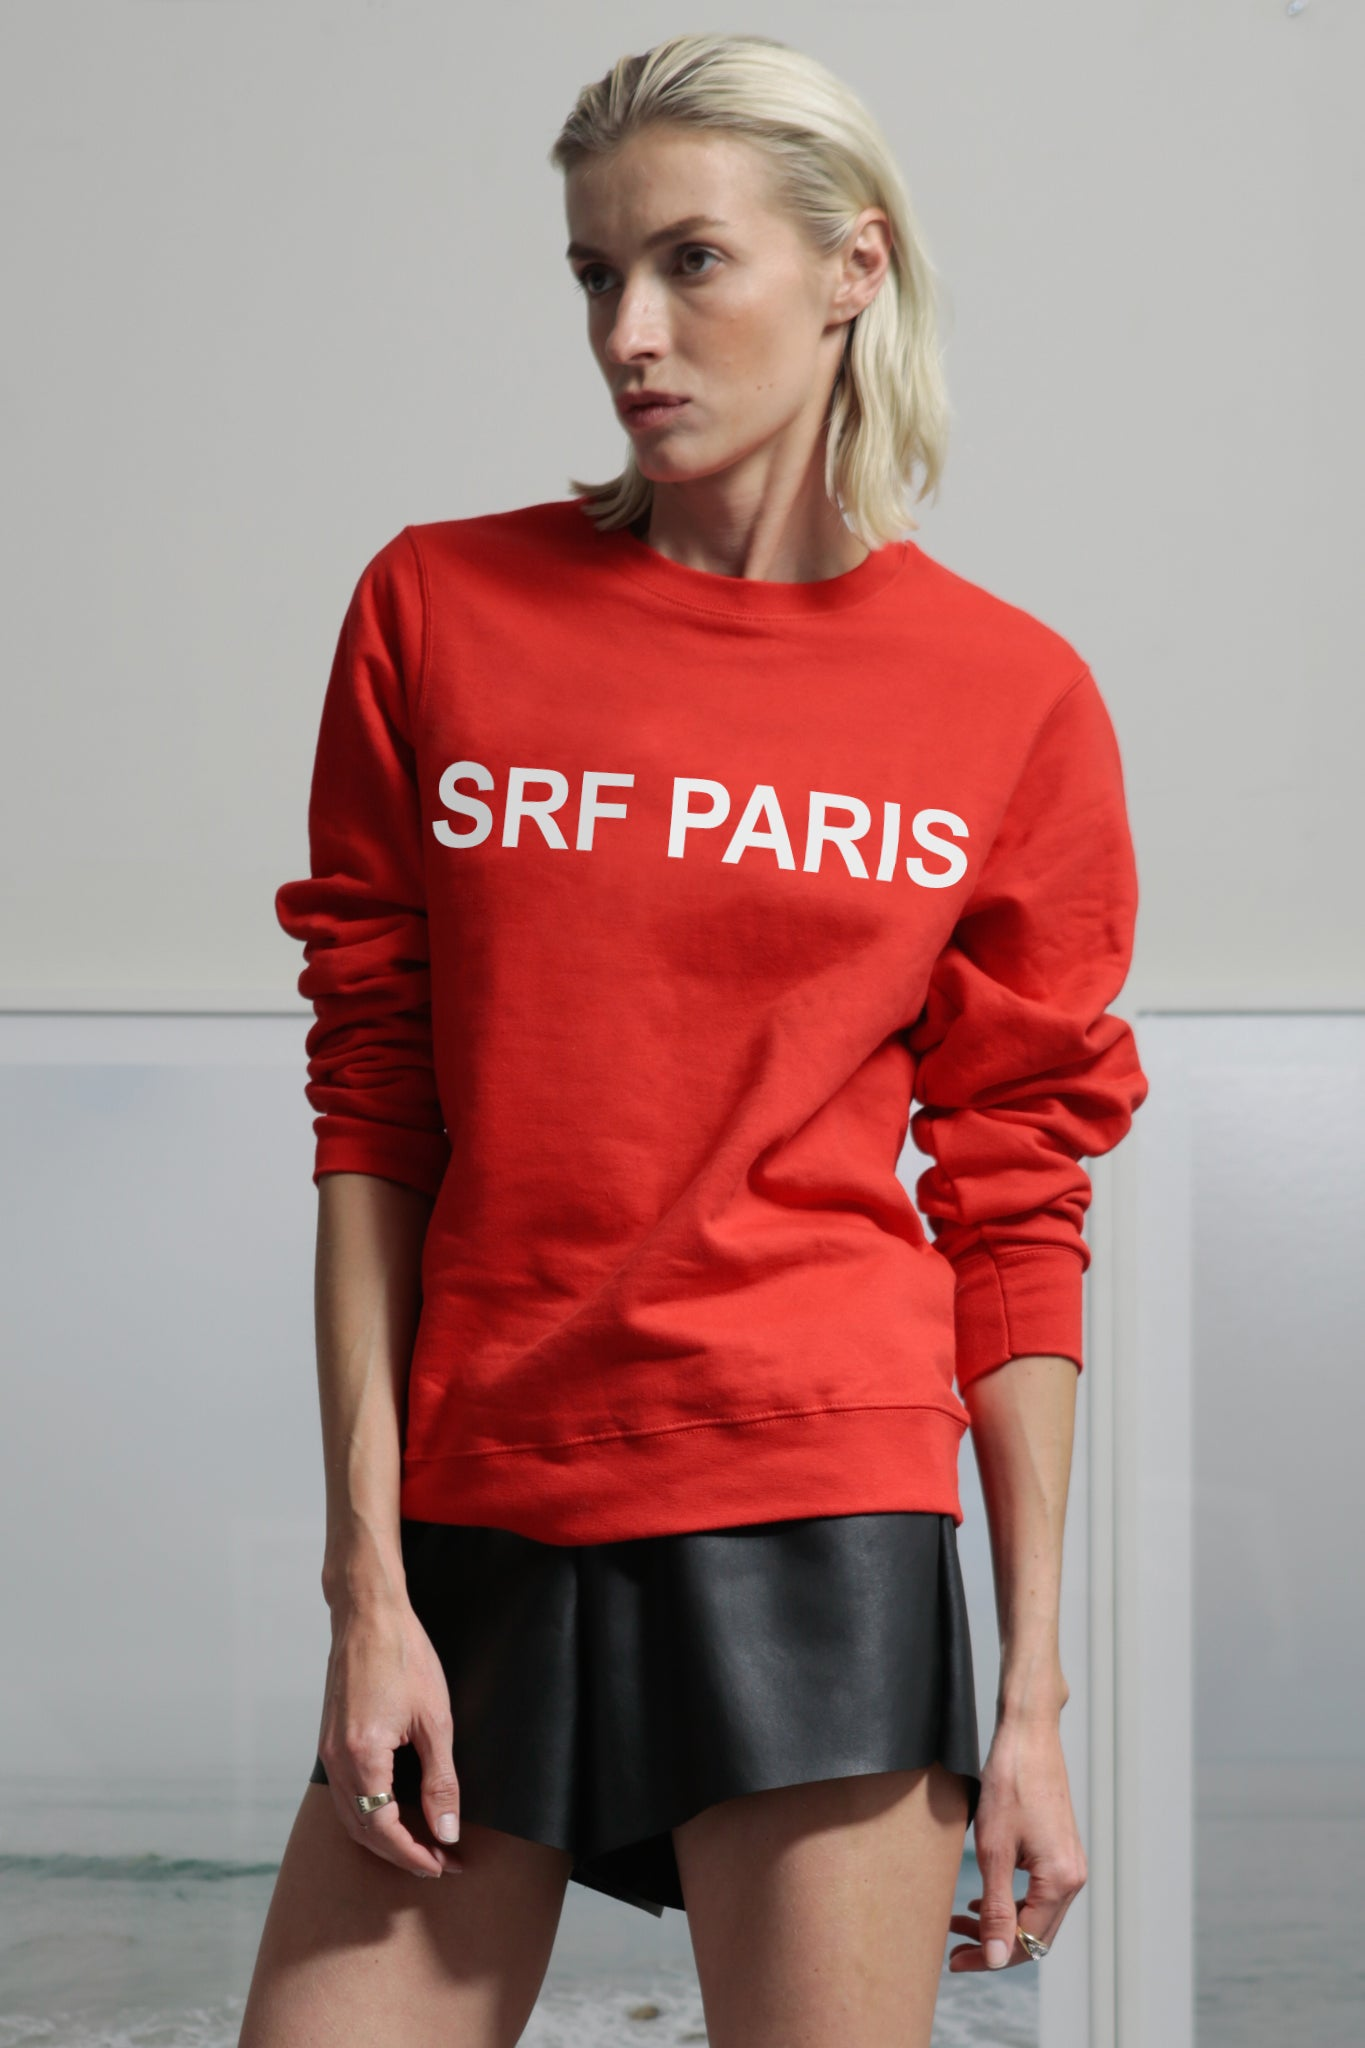 SRF PARIS CREWNECK - RED